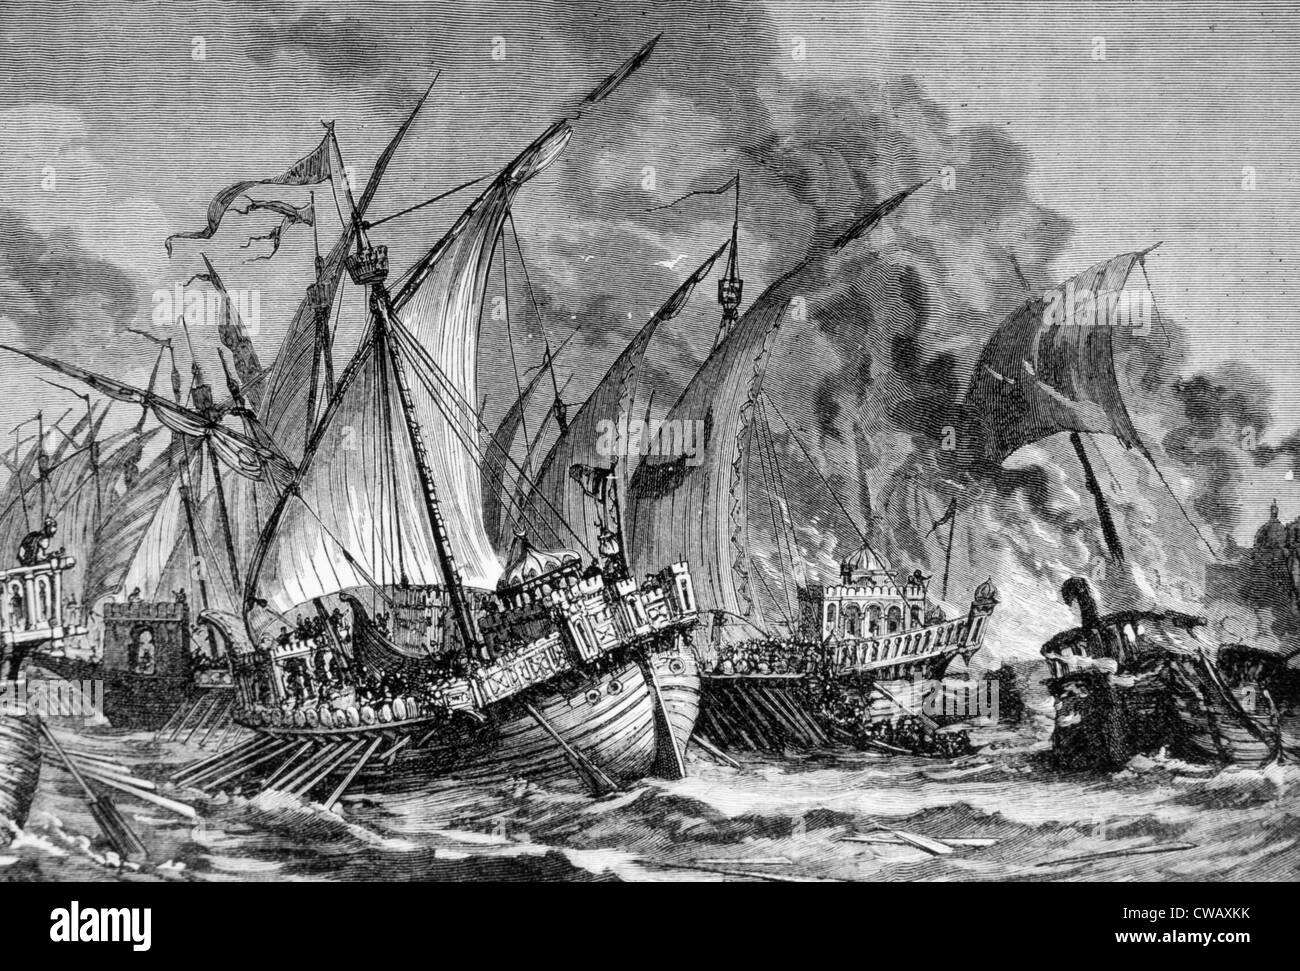 The Battle of the Masts, The fleet of Byzantine Emperor Constantine IV is defeated by the Muslim fleet in the Phoenician - Stock Image